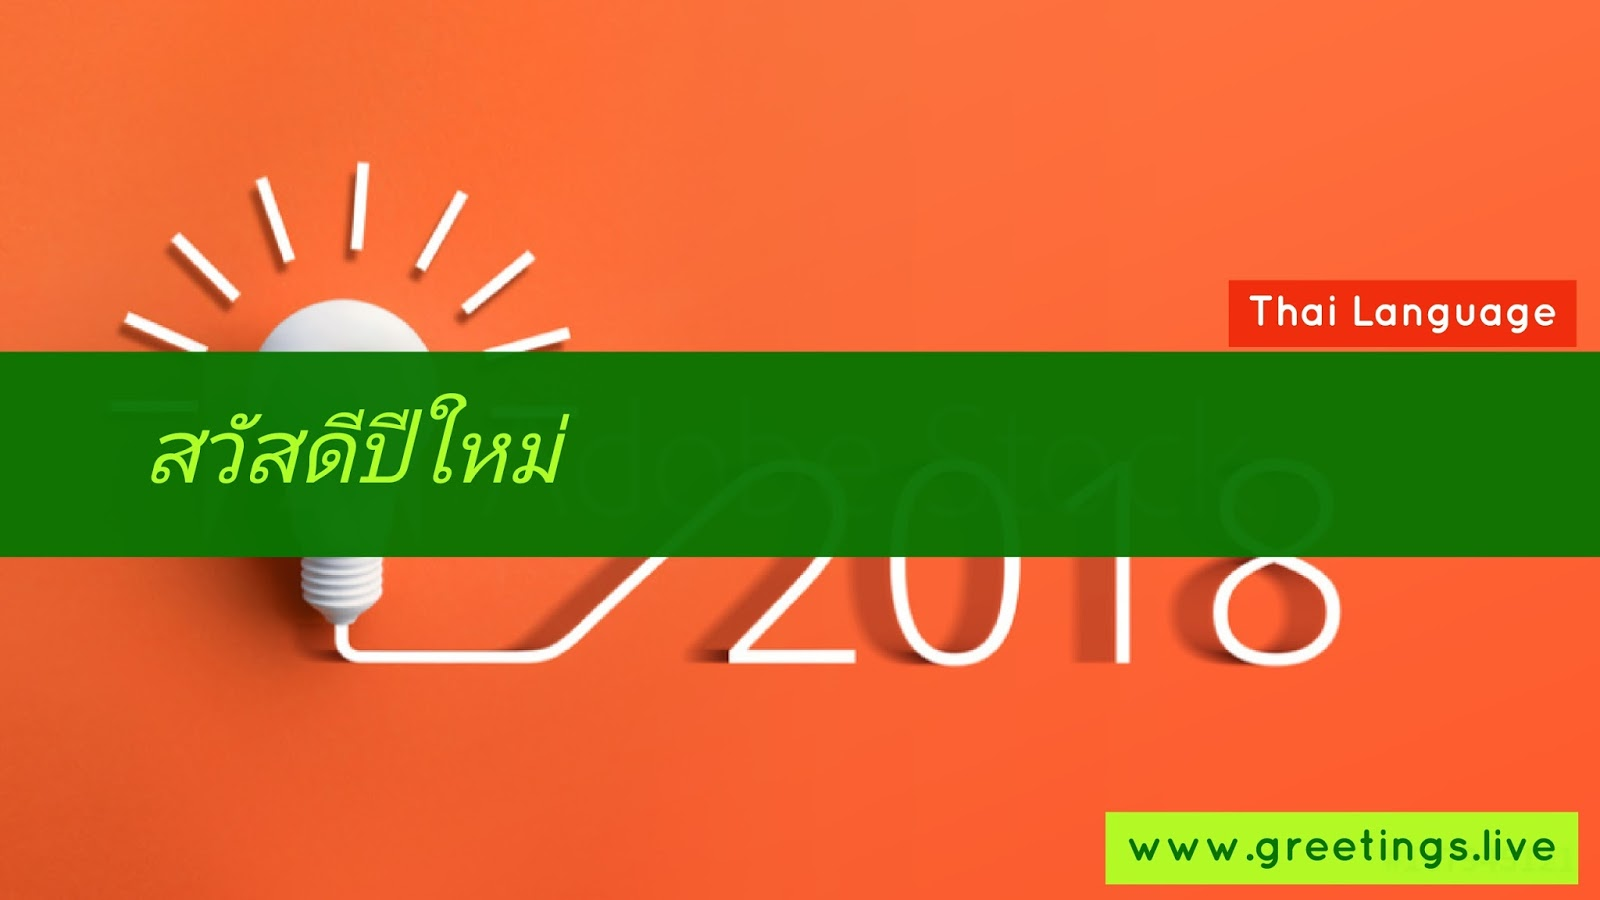 2018 New Year Wishes Greetings Thai Greetings On Happy New Year 2018